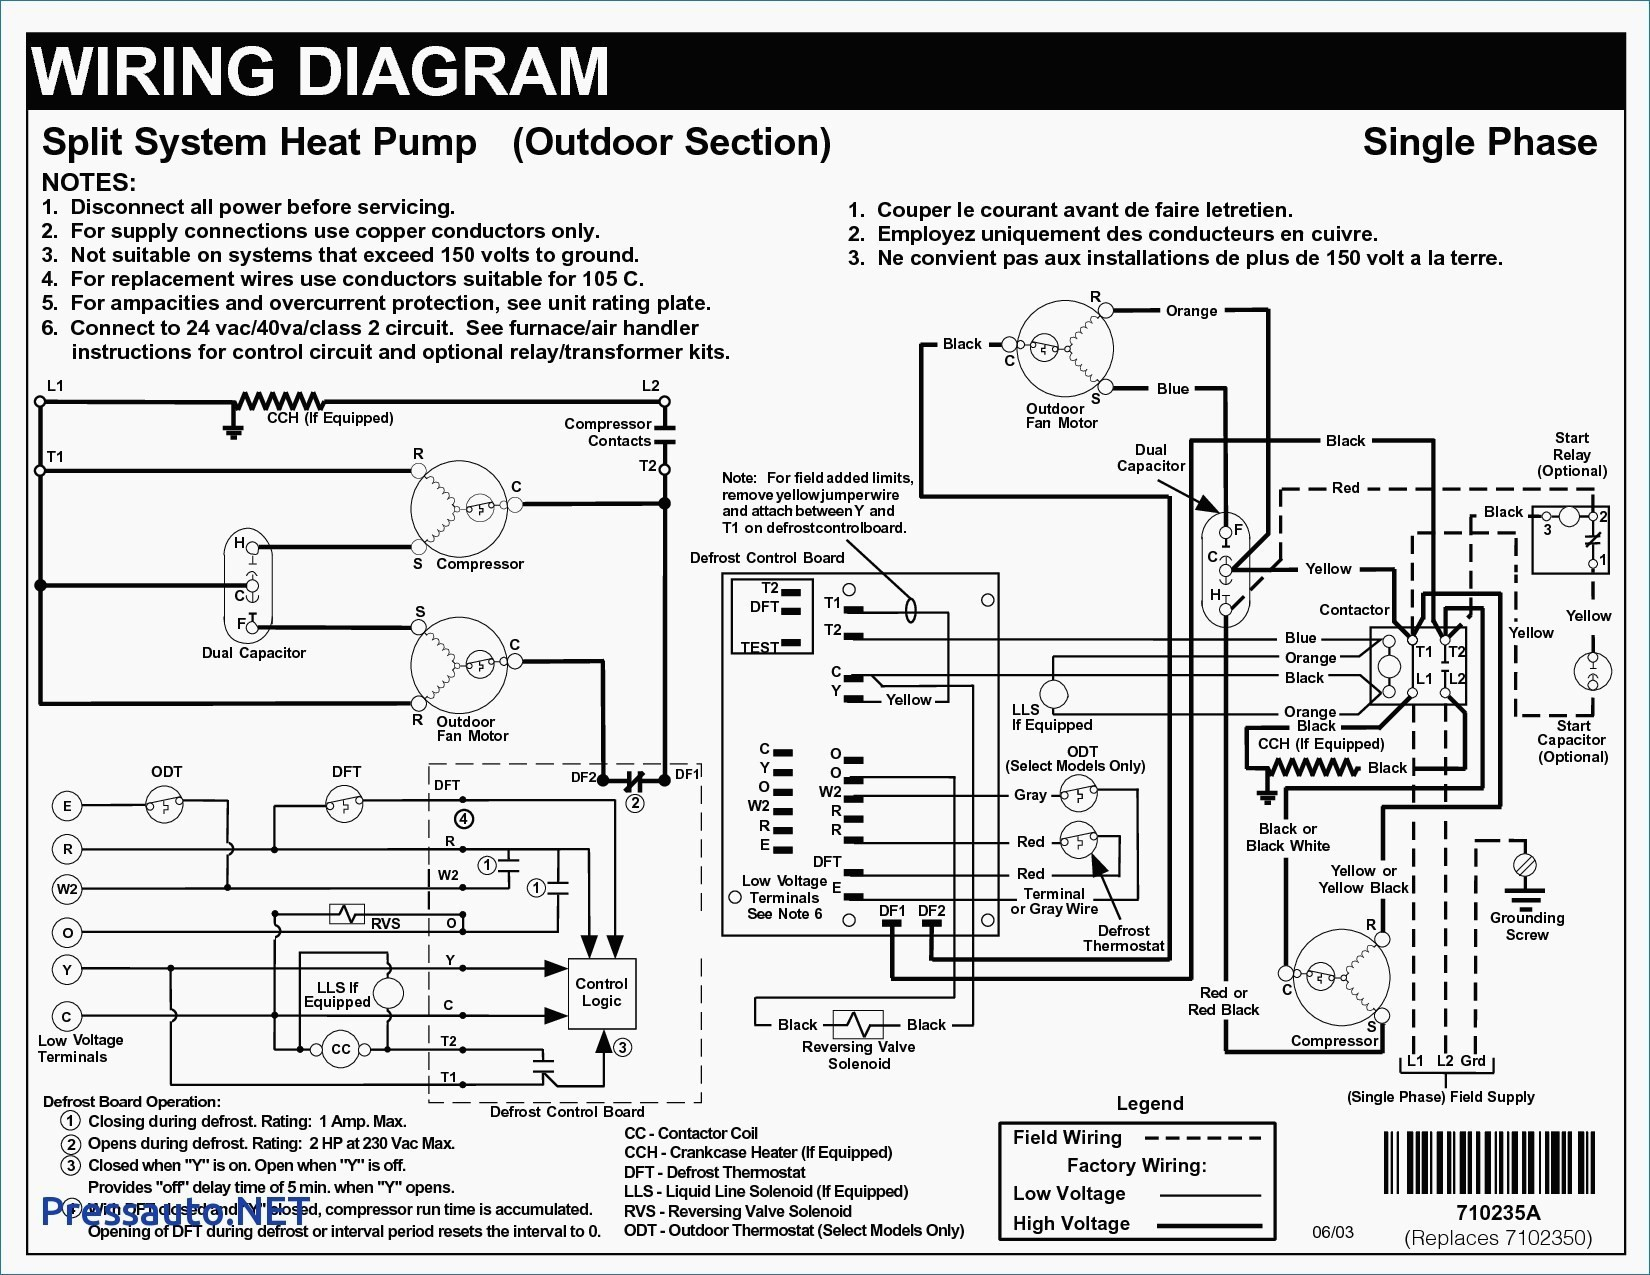 Xl 1200 Heat Pump Wiring Diagram Schematic - 2004 Jeep Grand Cherokee Under  Hood Fuse Box Diagram - toyota-tps.yenpancane.jeanjaures37.fr | Hvac Wiring Diagram For Trane 1200 Xl |  | Wiring Diagram Resource